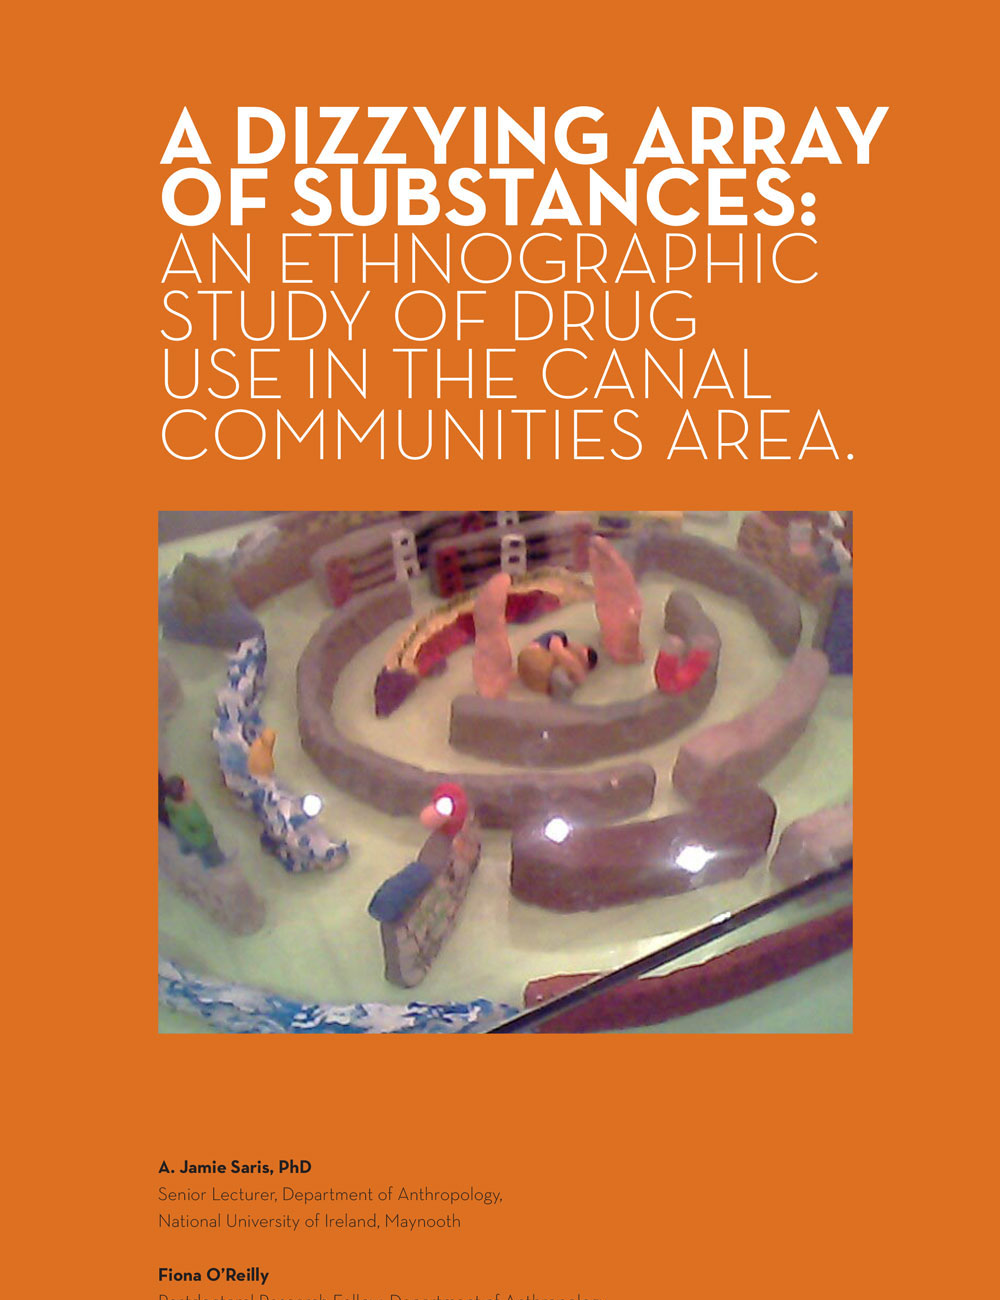 research-canal-communities-local-drugs-task-force-a-dizzying-array-of-substances